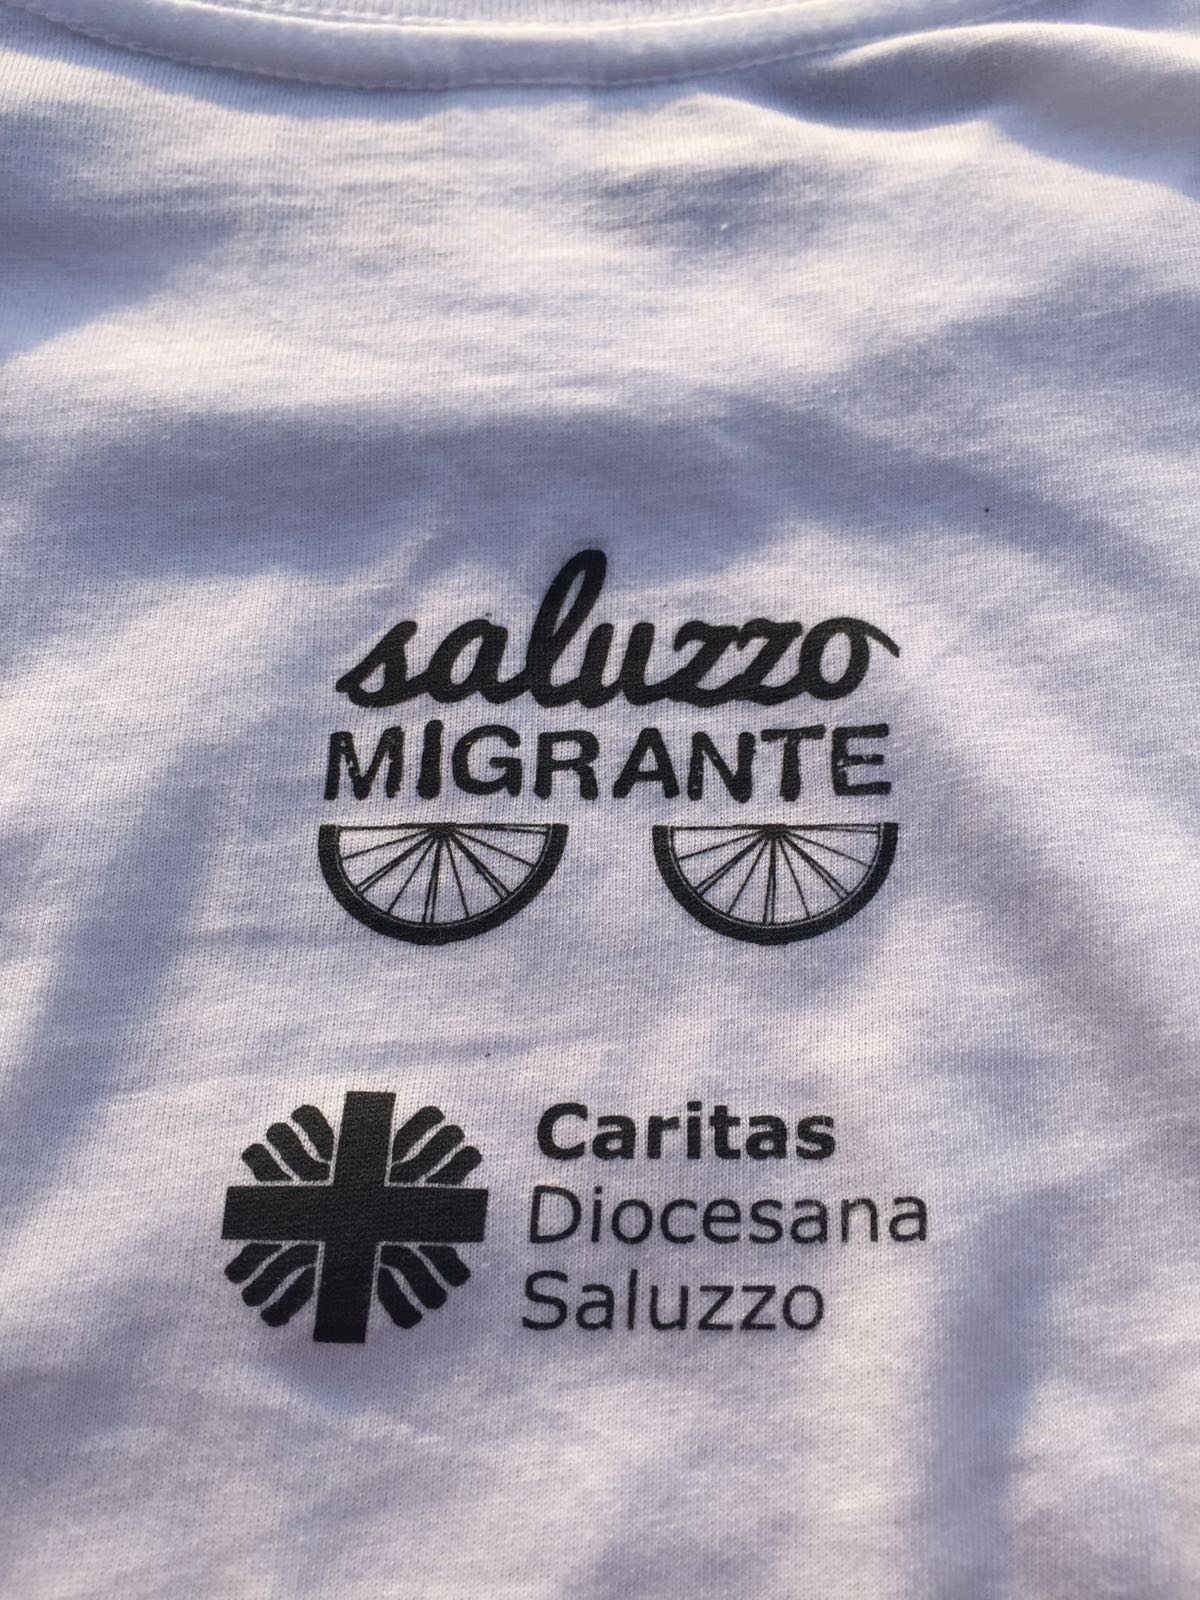 Magliette 2018 wear saluzzo migrante we are caritas saluzzo migranti t-shirt